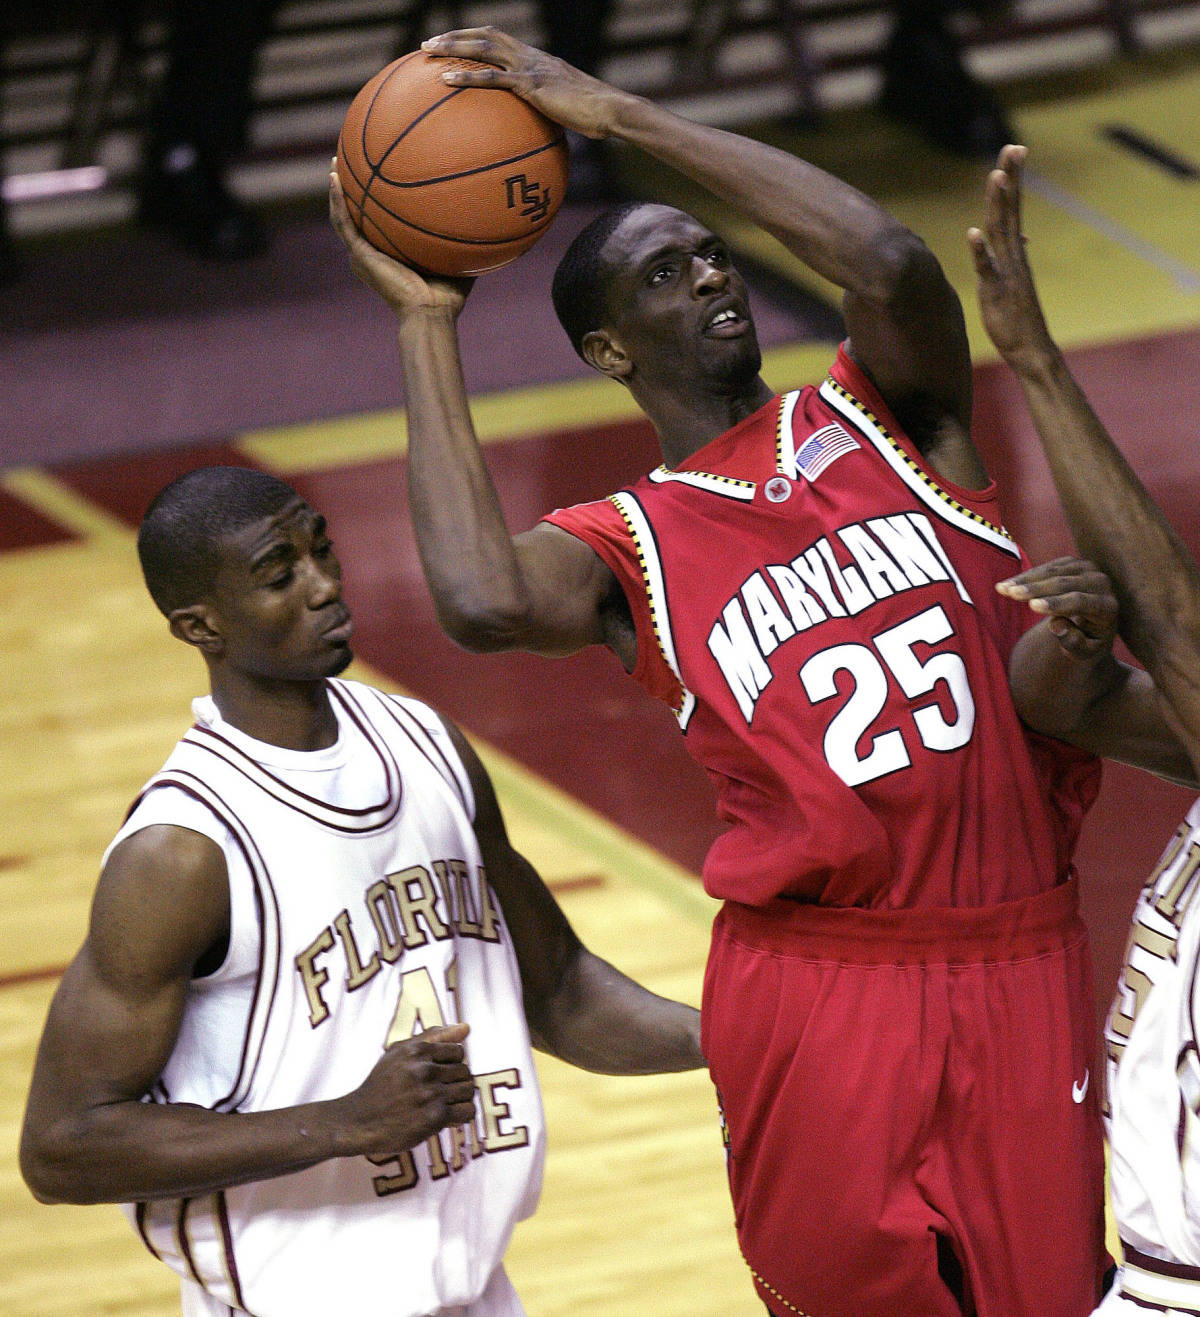 Maryland's Ekene Ibekwe, right, scores two first-half points as Florida State's Uche Eche Echefu, left, attempts to defend during a college basketball game, Tuesday, Jan. 30, 2007, in Tallahassee, Fla.(AP Photo/Phil Coale)